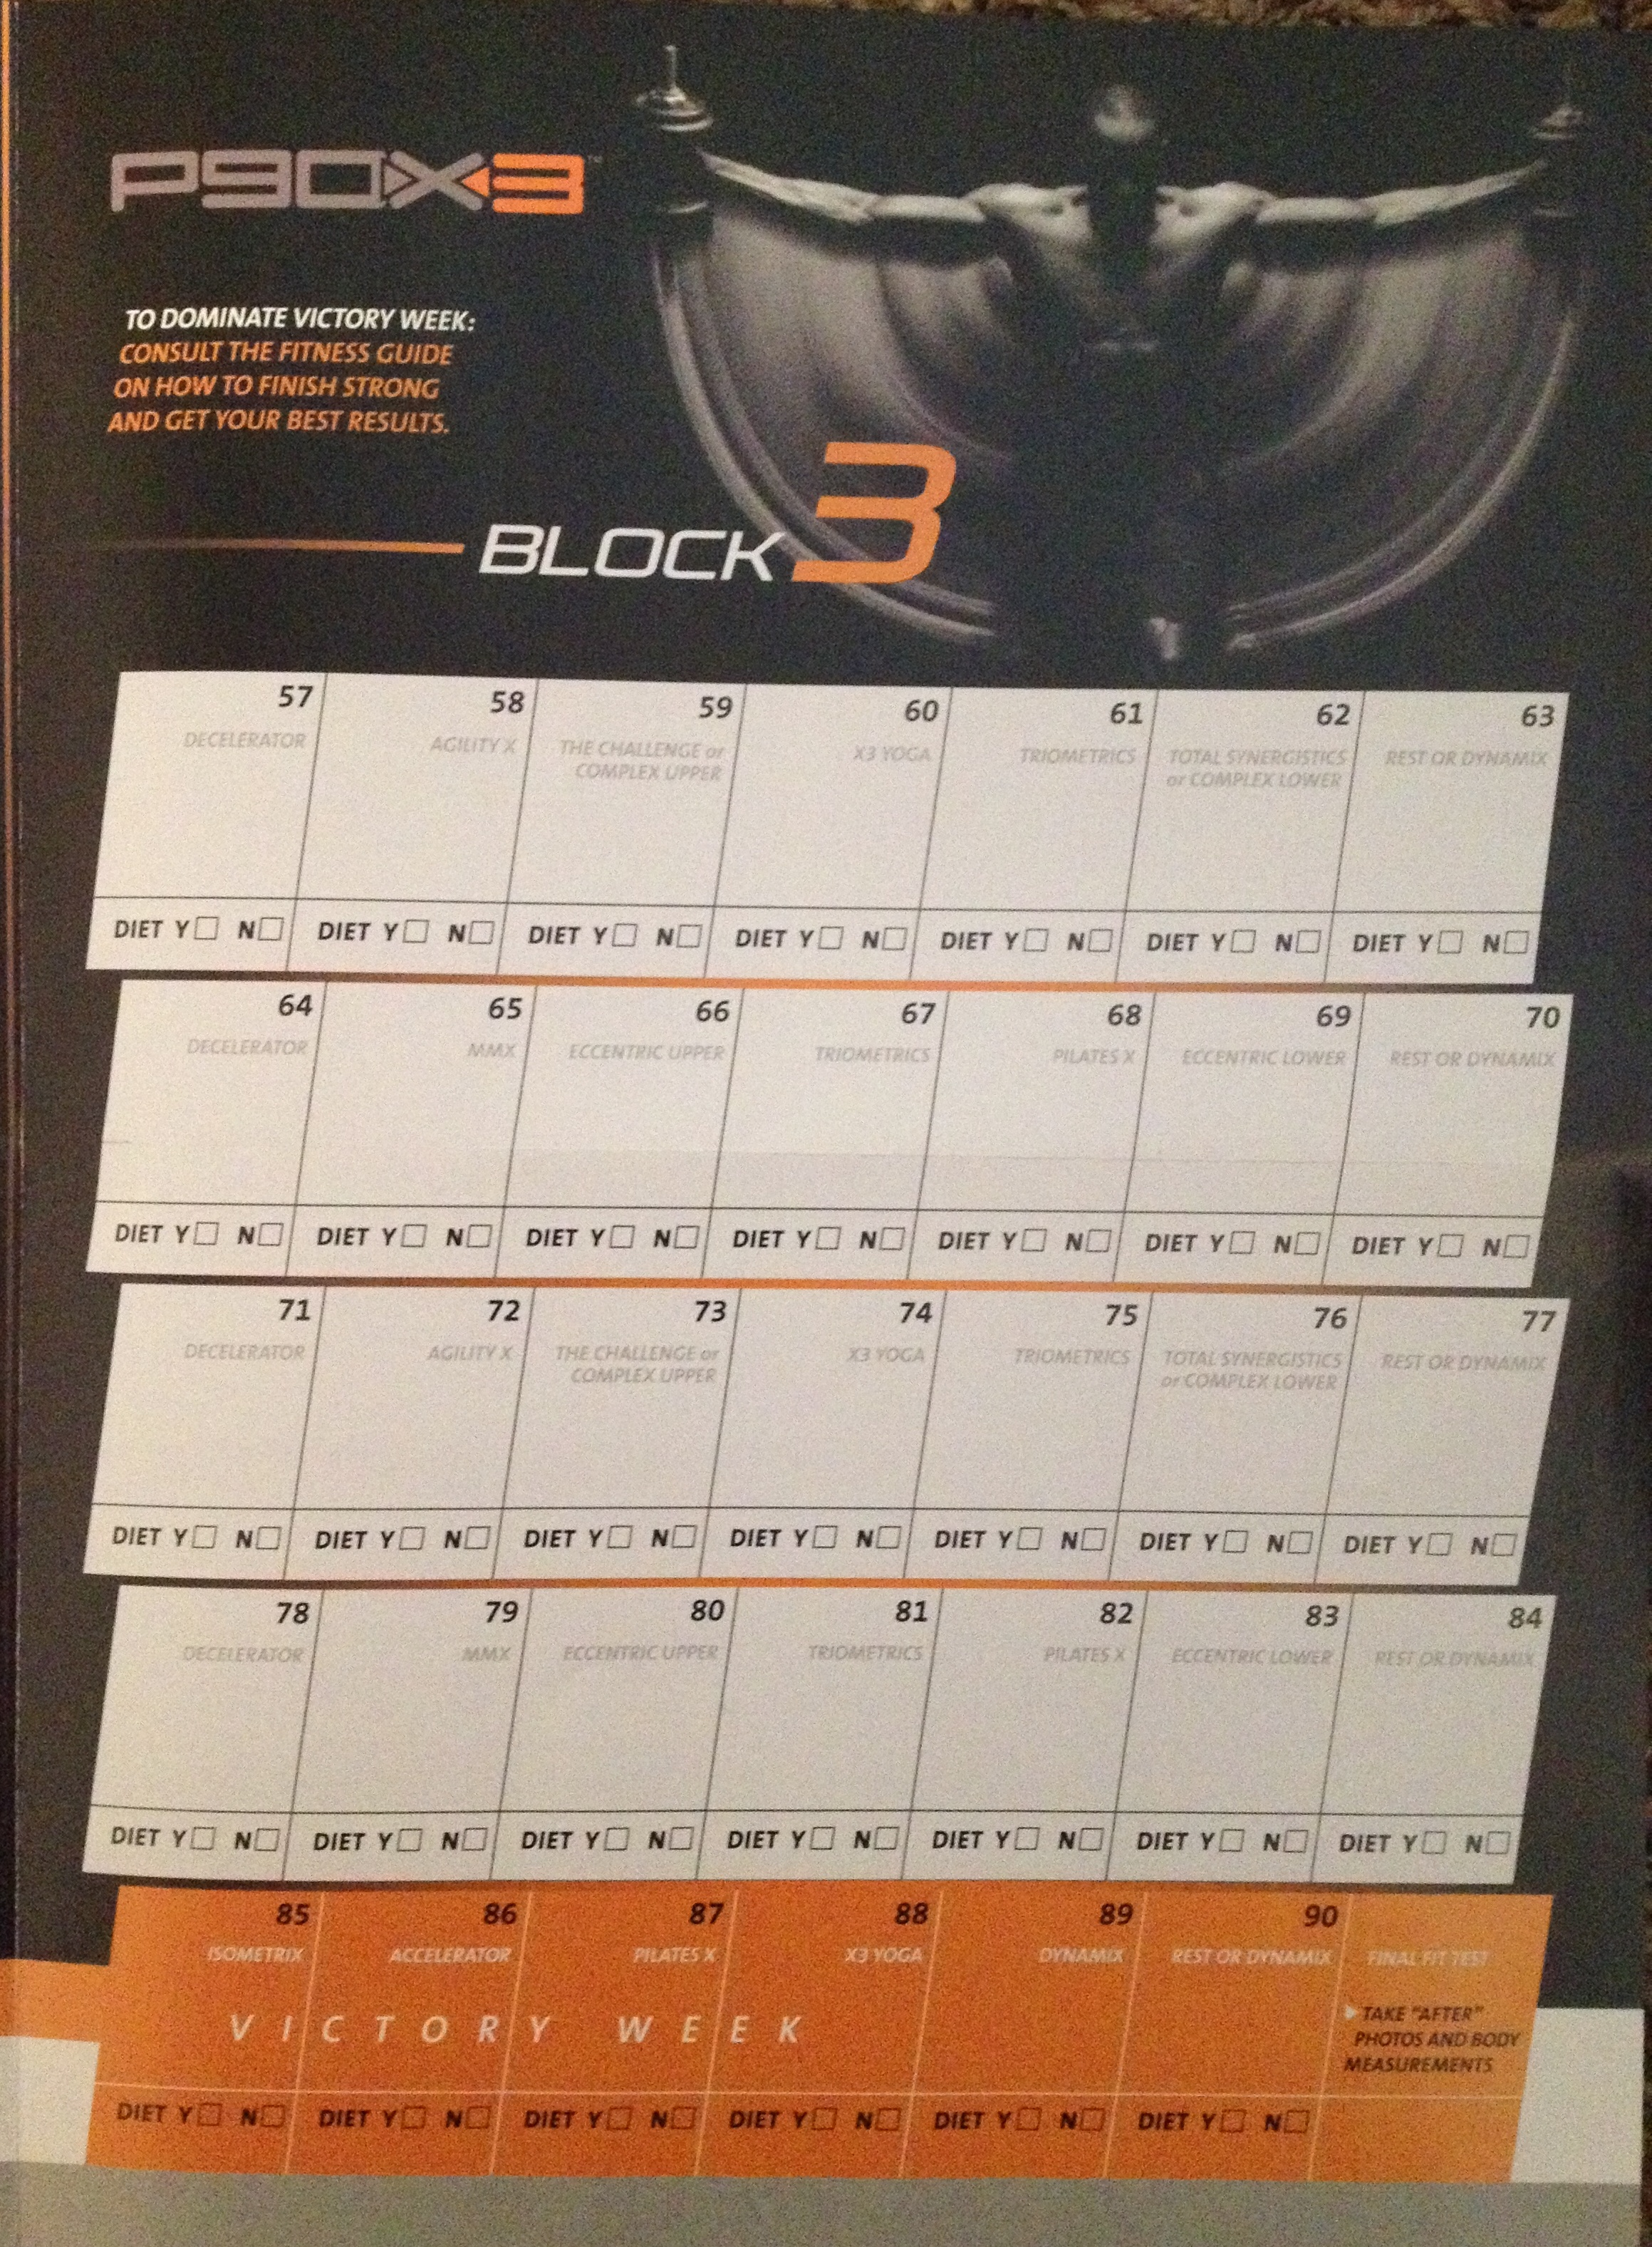 P90x3 Doubles Workout Schedule